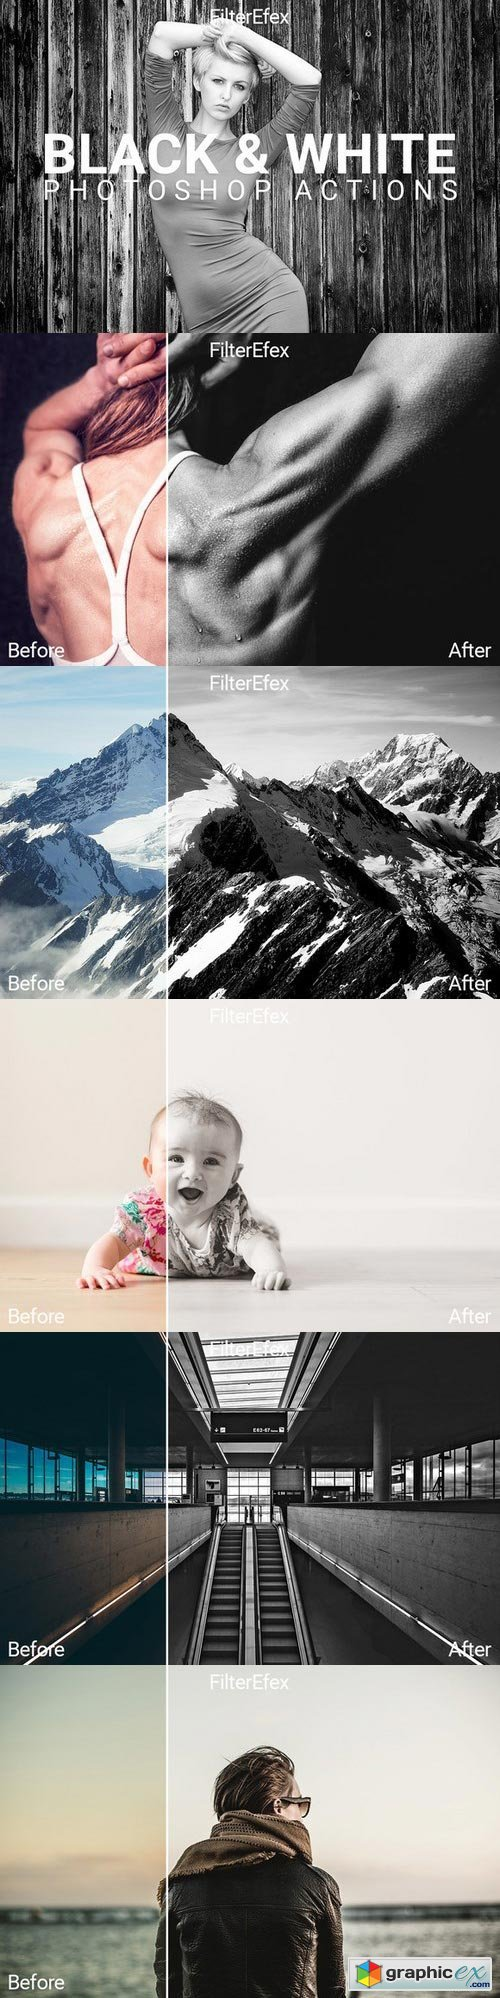 Black & White Photoshop Actions 713929